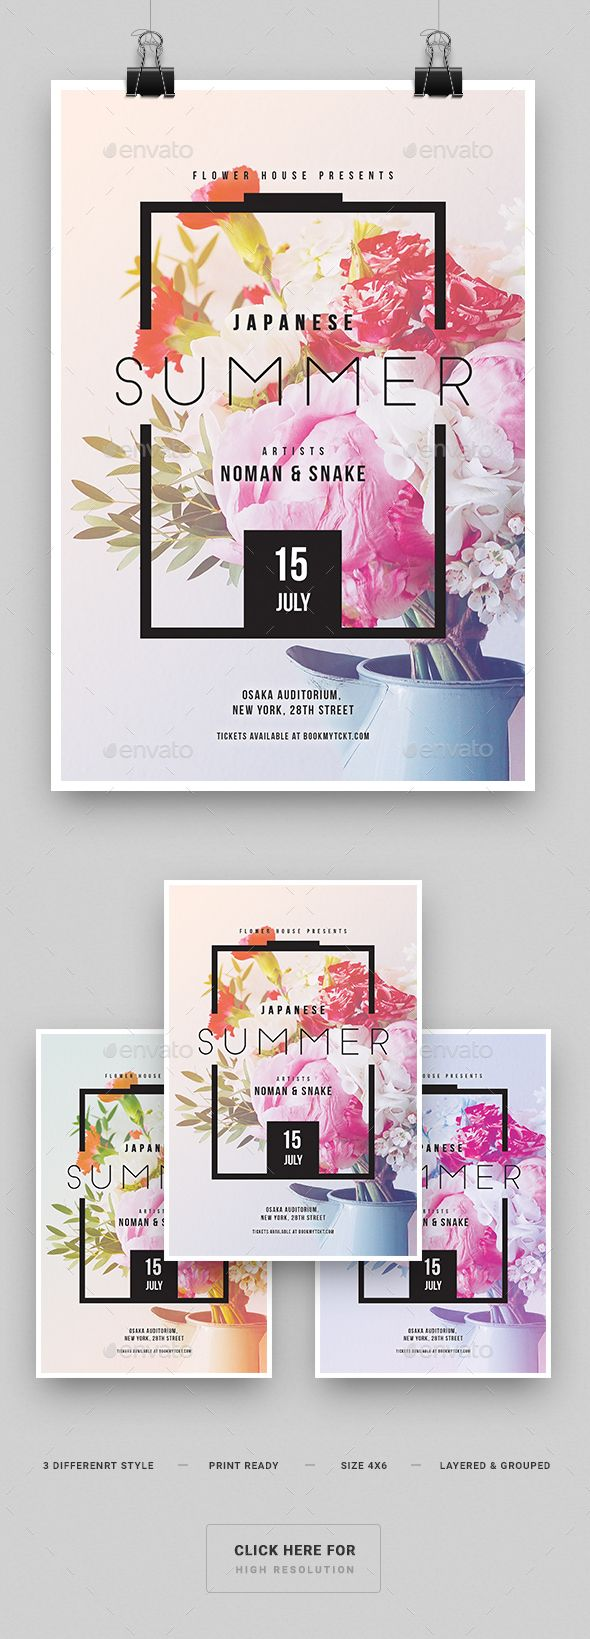 Japanese Summer Party Flyer  - PSD Template • Only available here ➝ http://graphicriver.net/item/japanese-summer-party-flyer/16836723?ref=pxcr